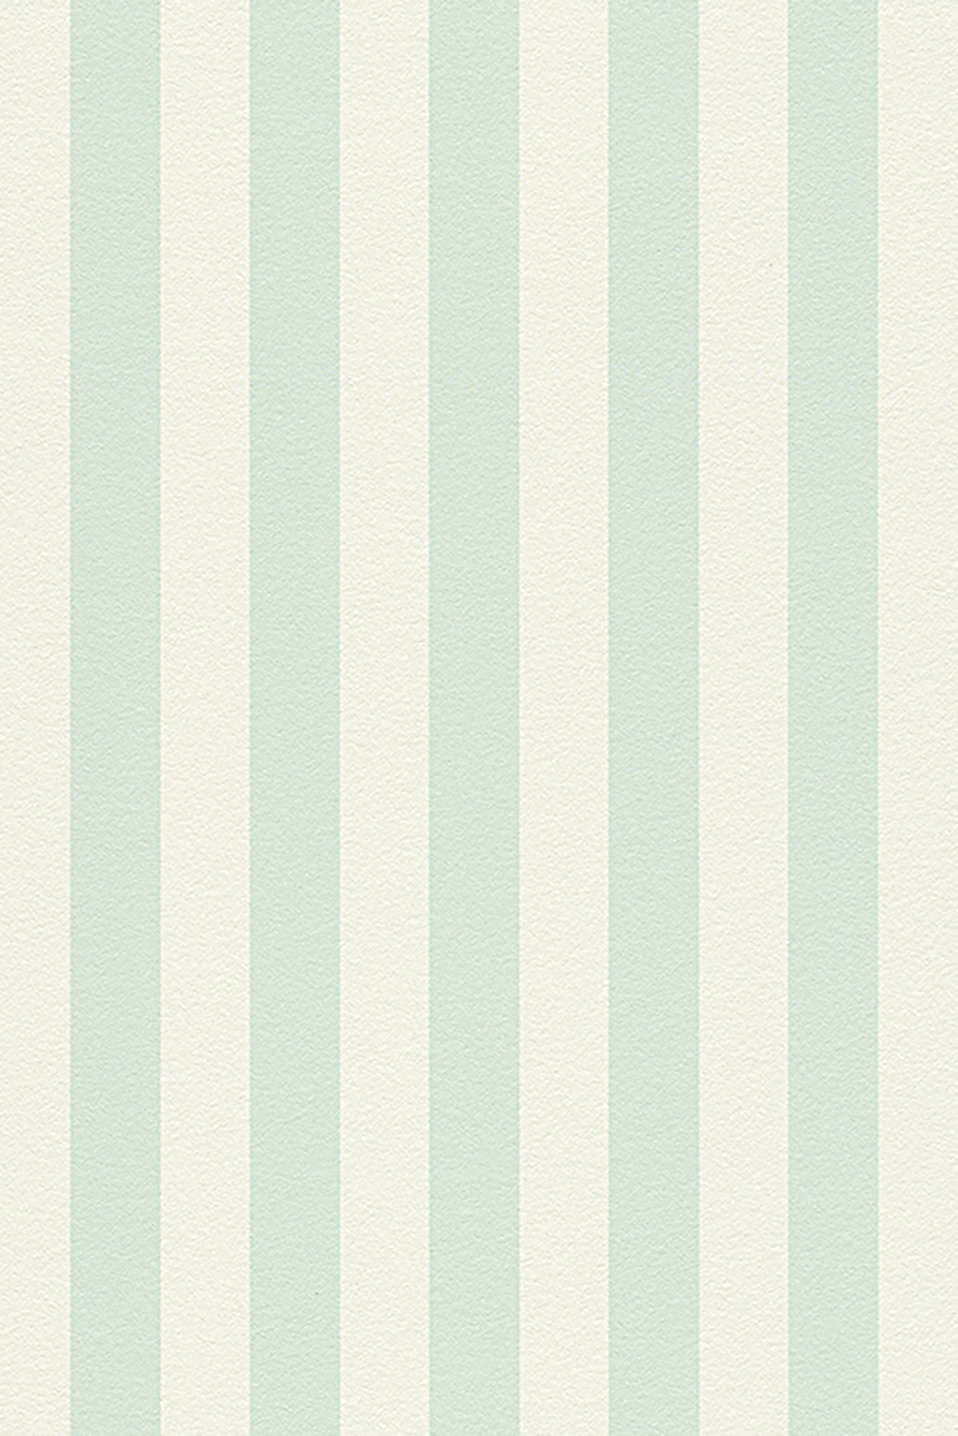 with pastel stripes, made of vlies